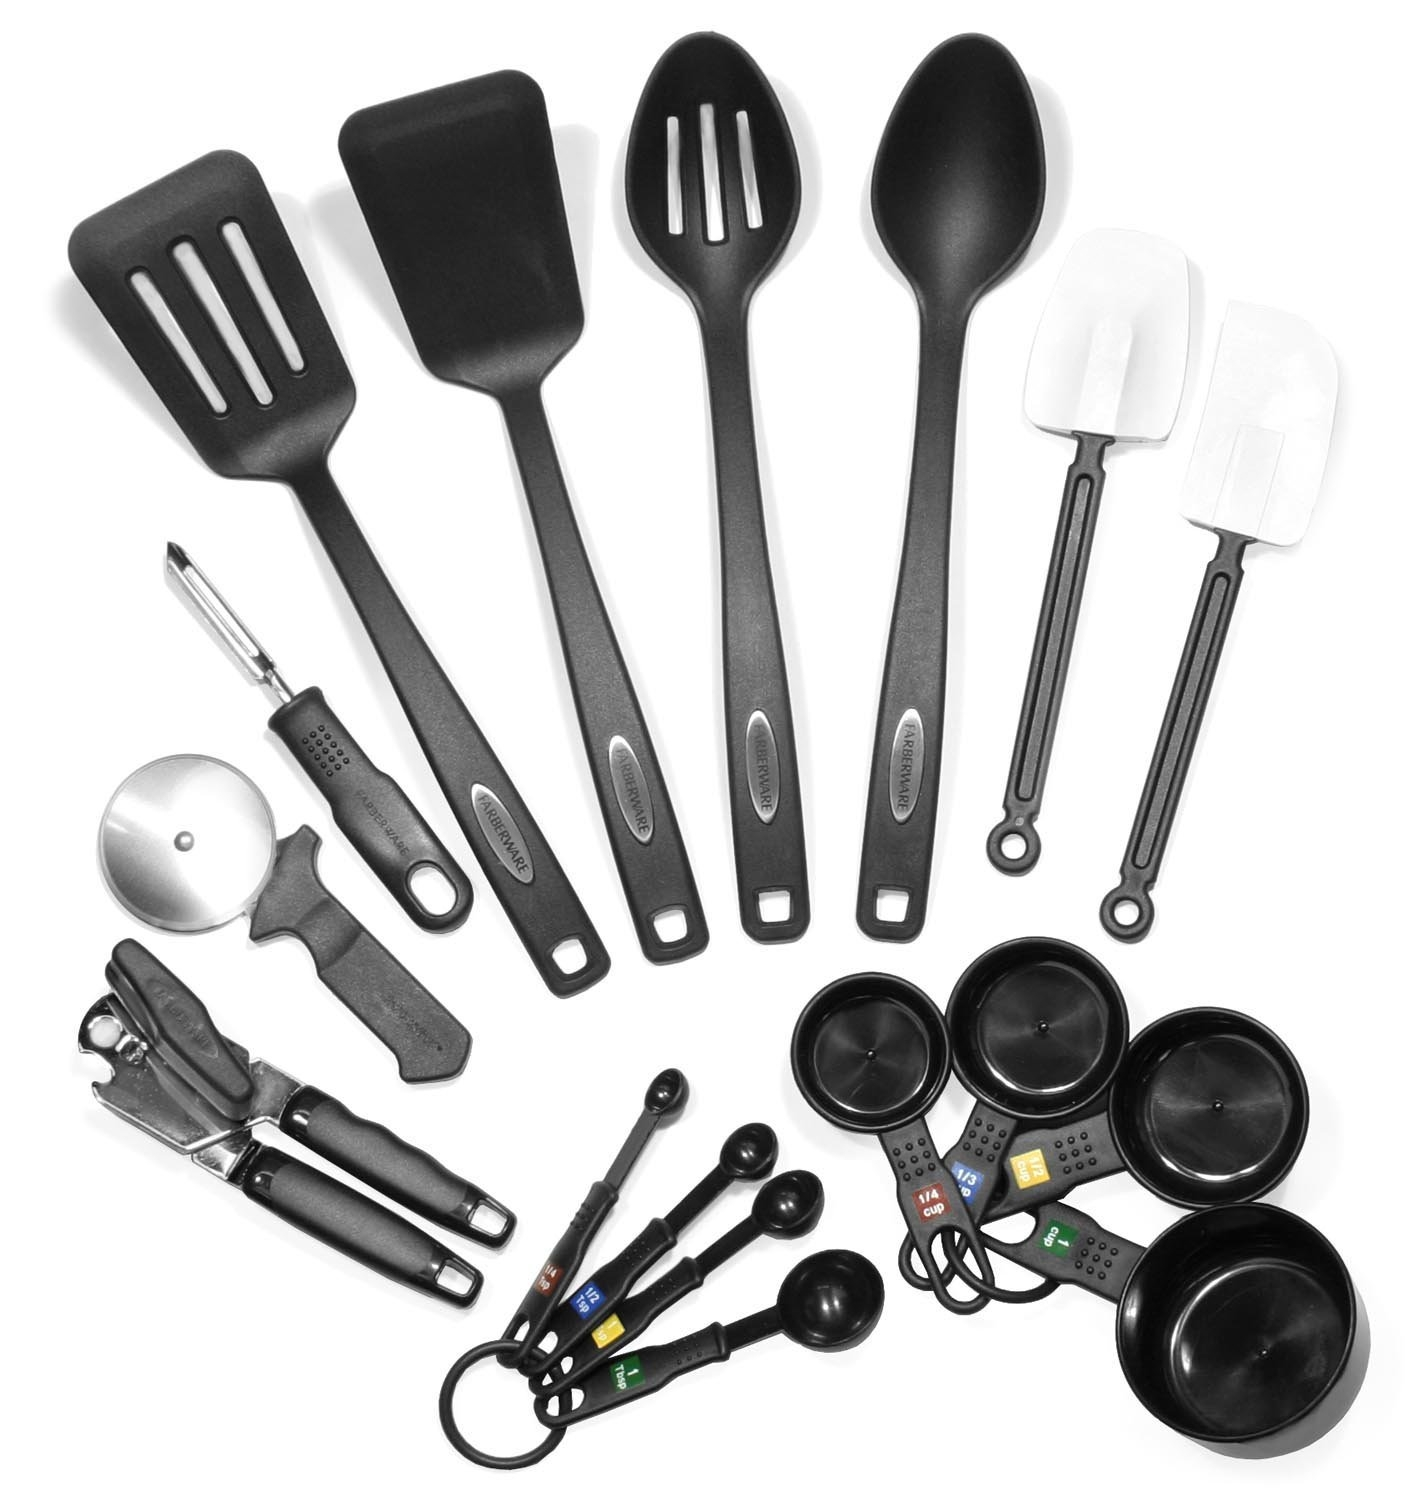 Permalink to Farberware Kitchen Utensil Set